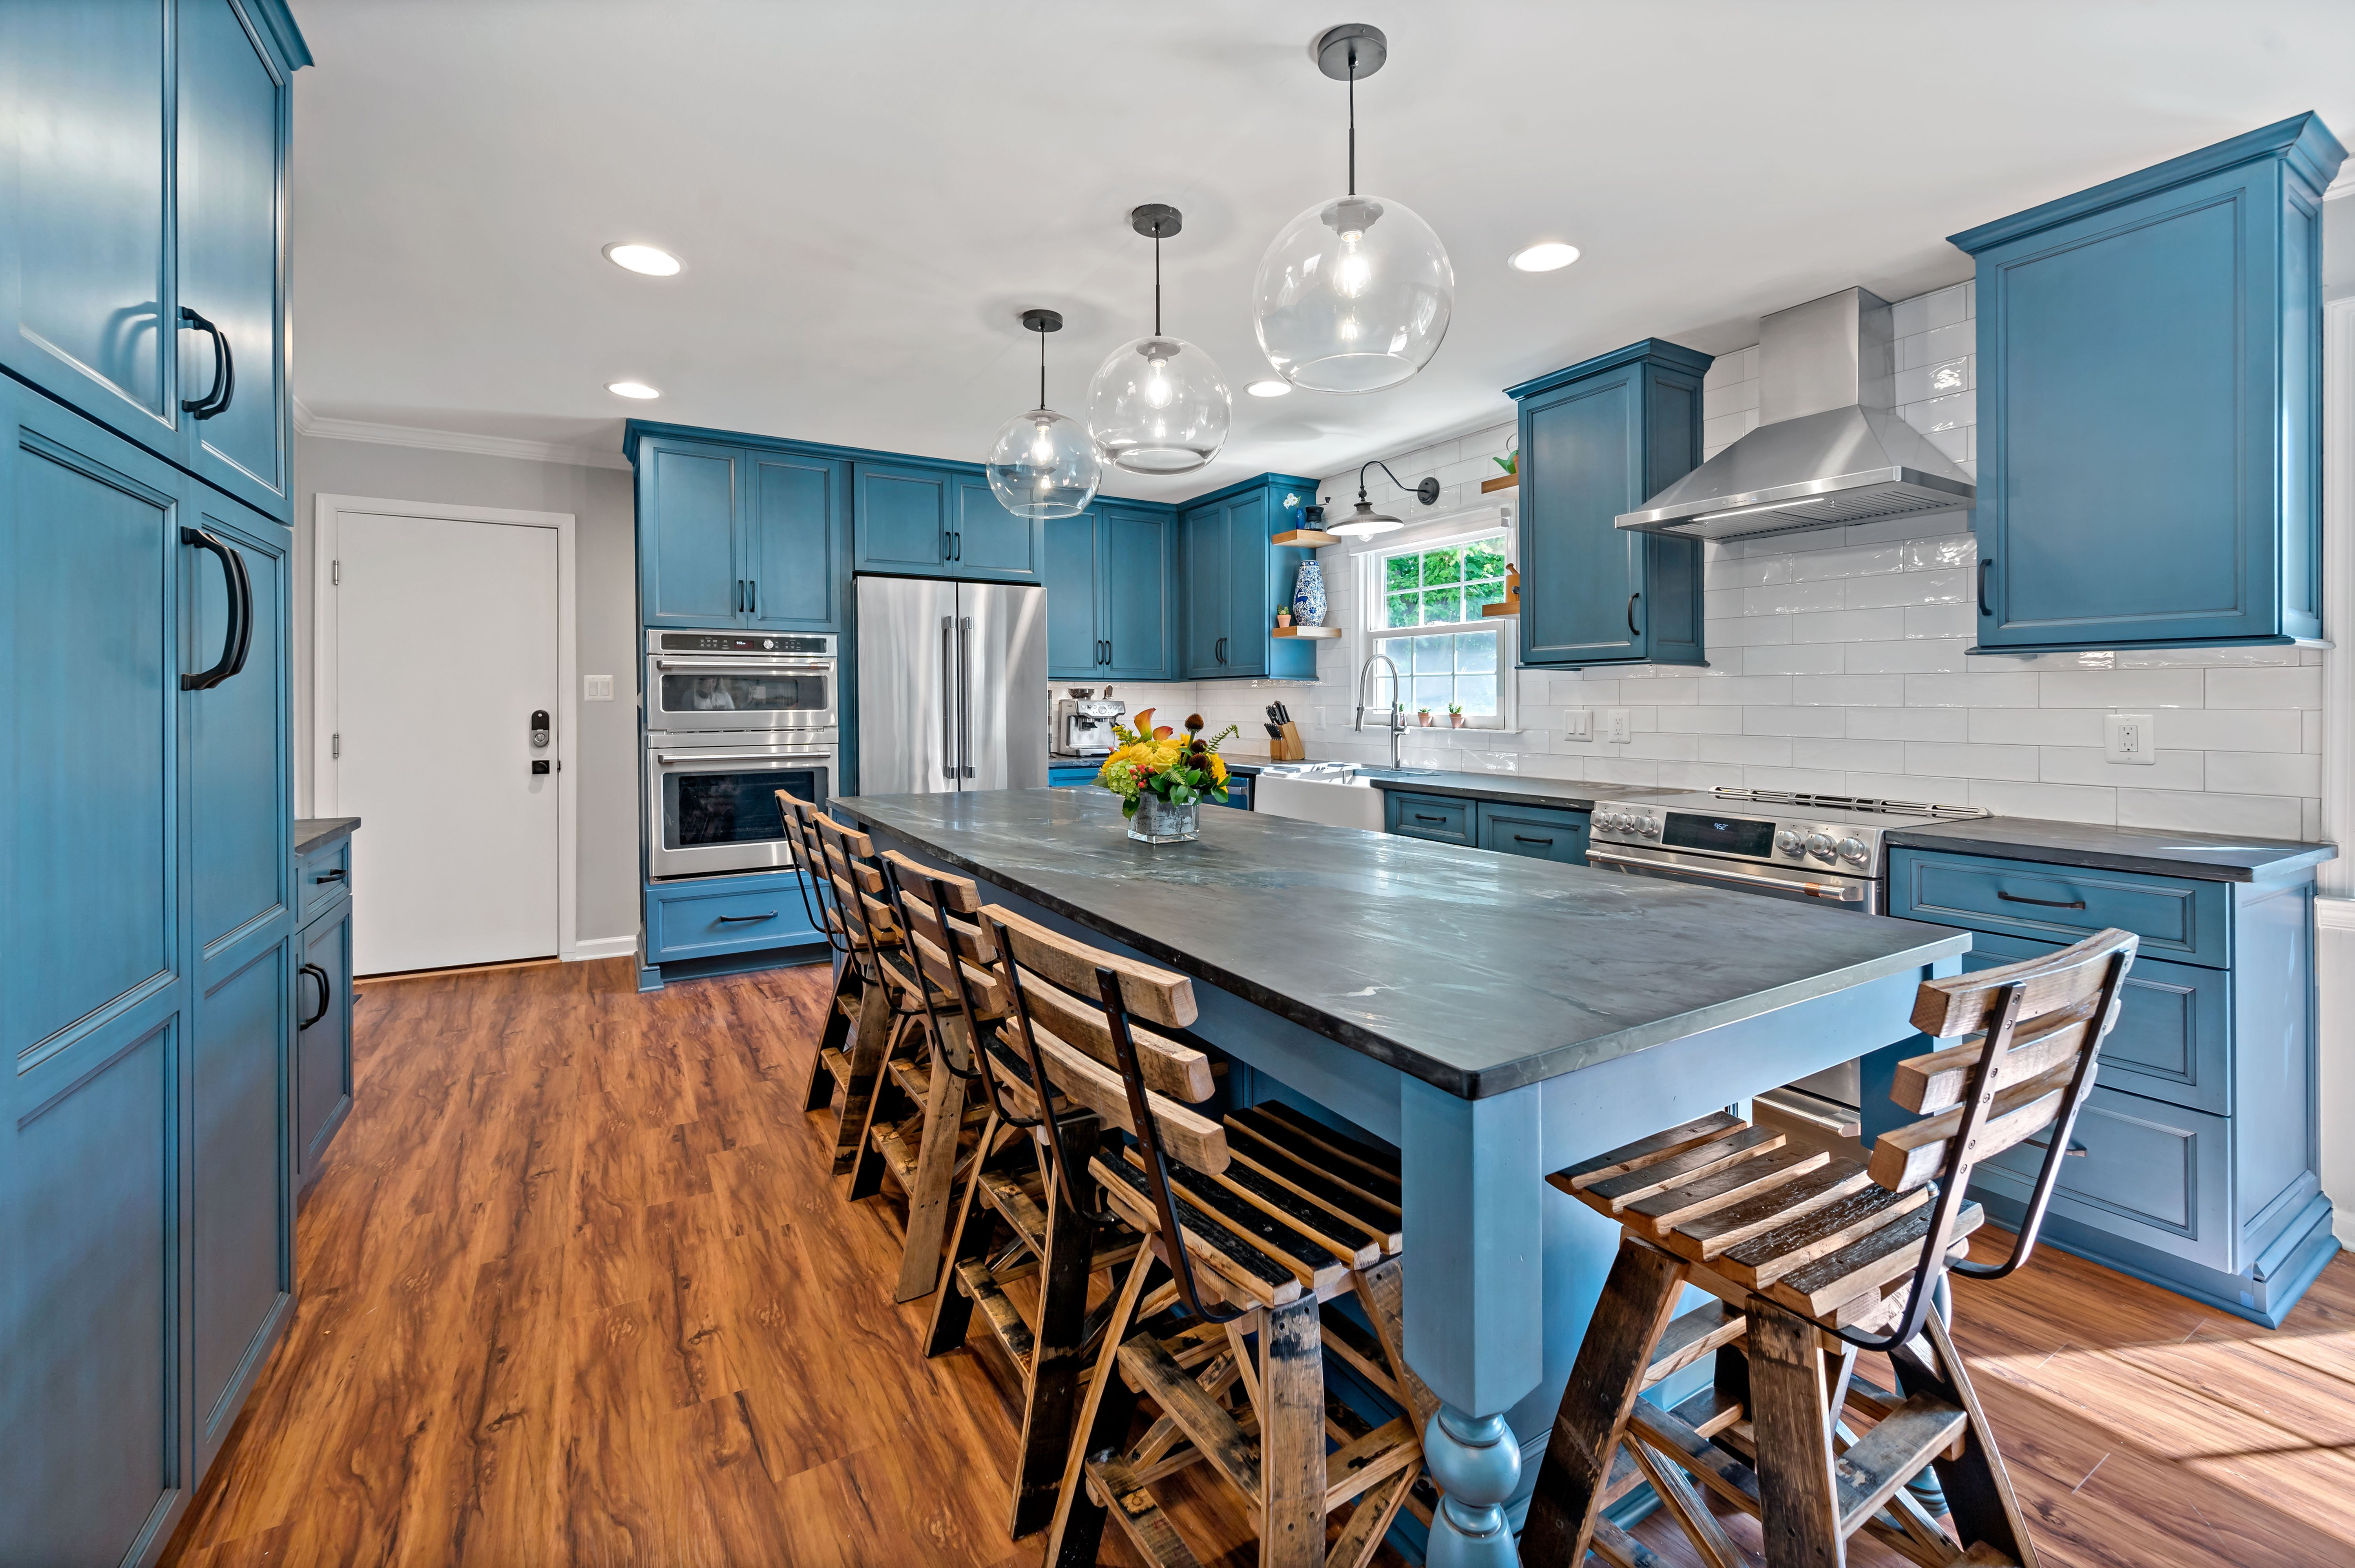 Beautiful Herndon Kitchen Remodel Inspired by Travels to Williamsburg